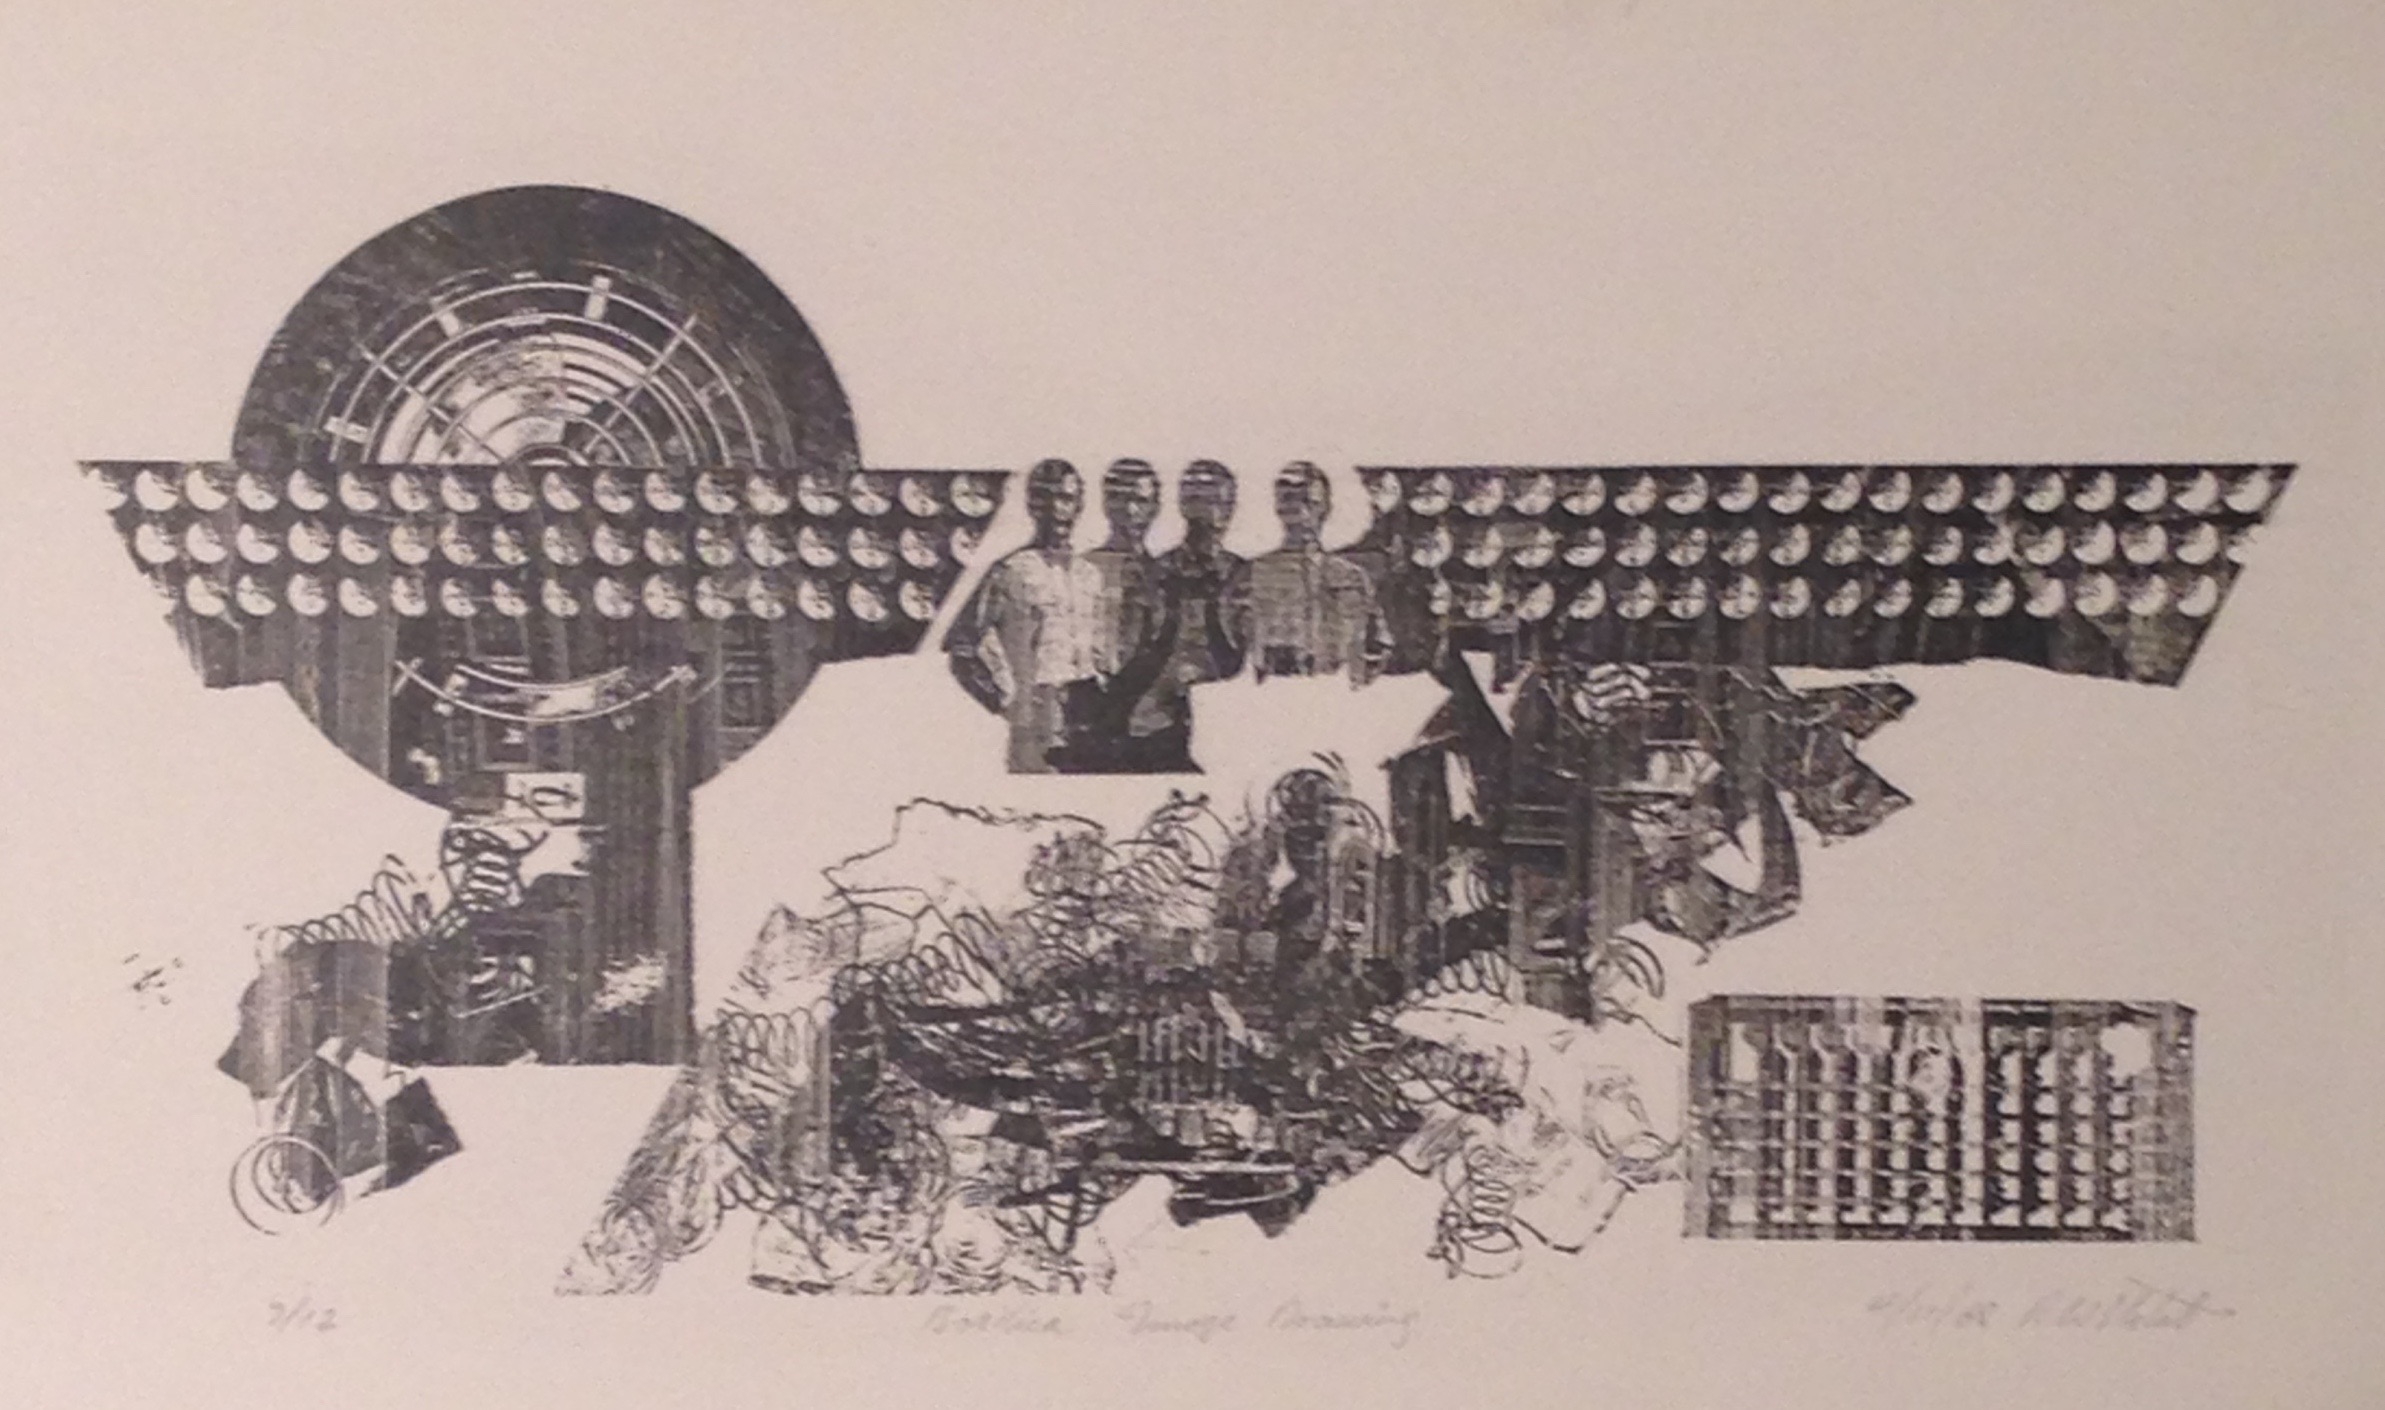 Wayne Eastcott, Basilica Image Drawing, 1968